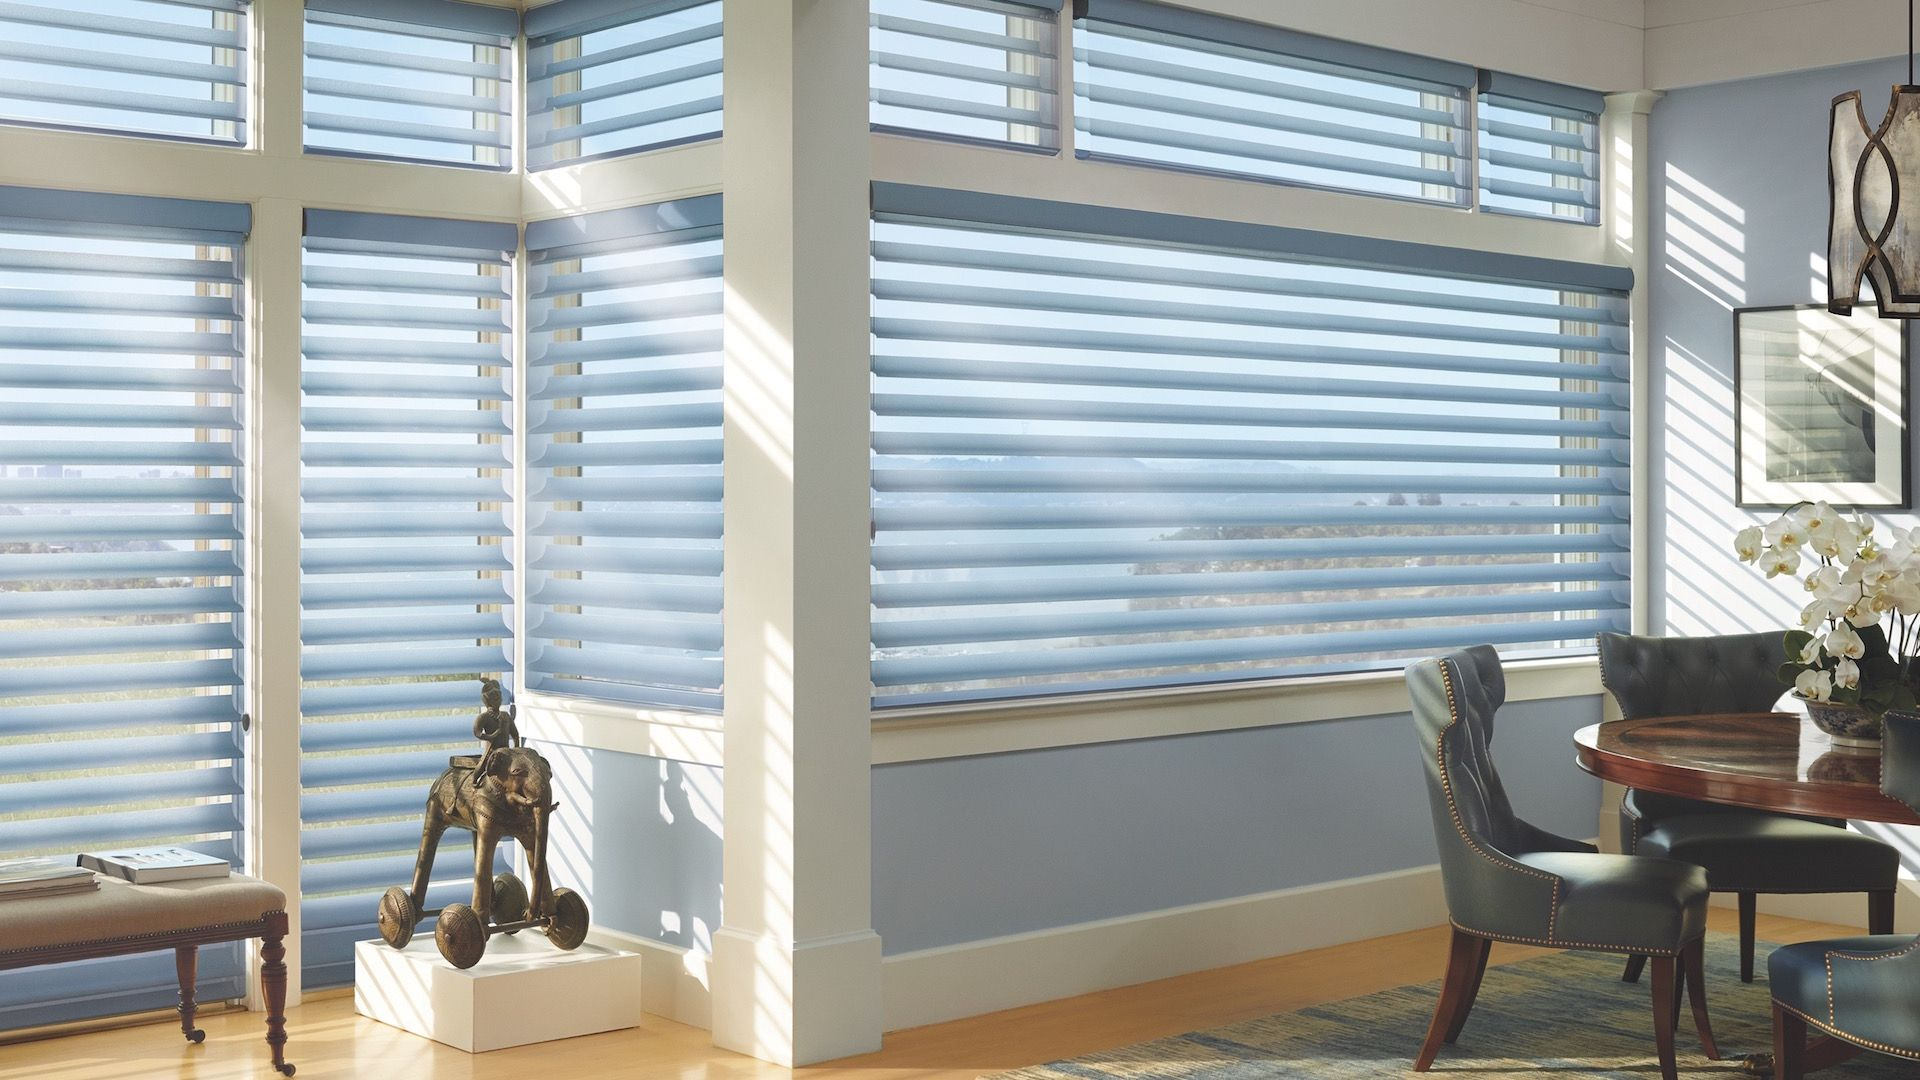 Silhouette Window Shadings At Blinds Ultrasonic Cleaning Repair In West Palm Beach Fl